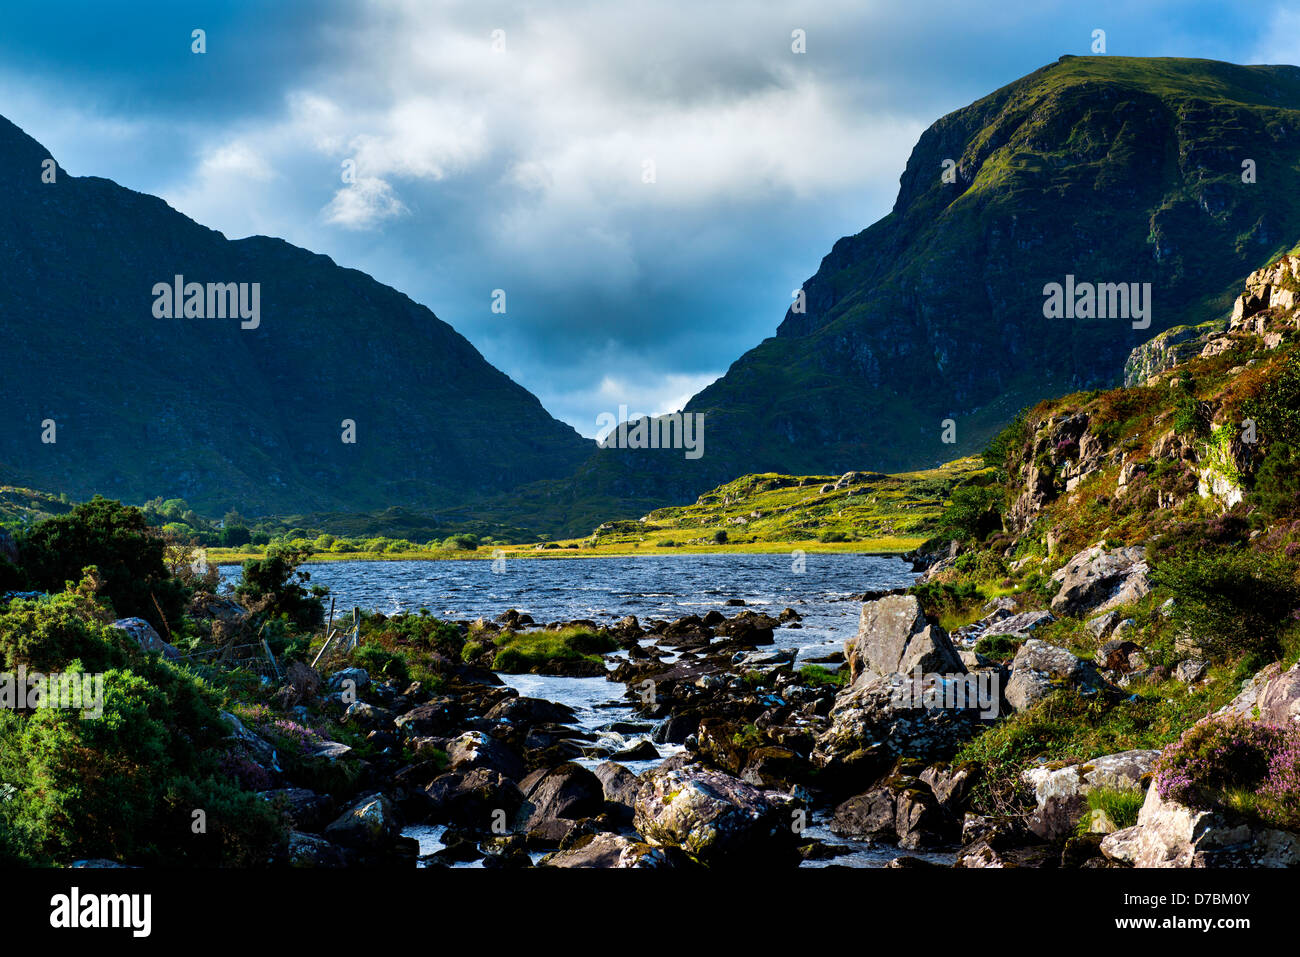 Gap of Dunloe , Co. Kerry, Ireland - Stock Image